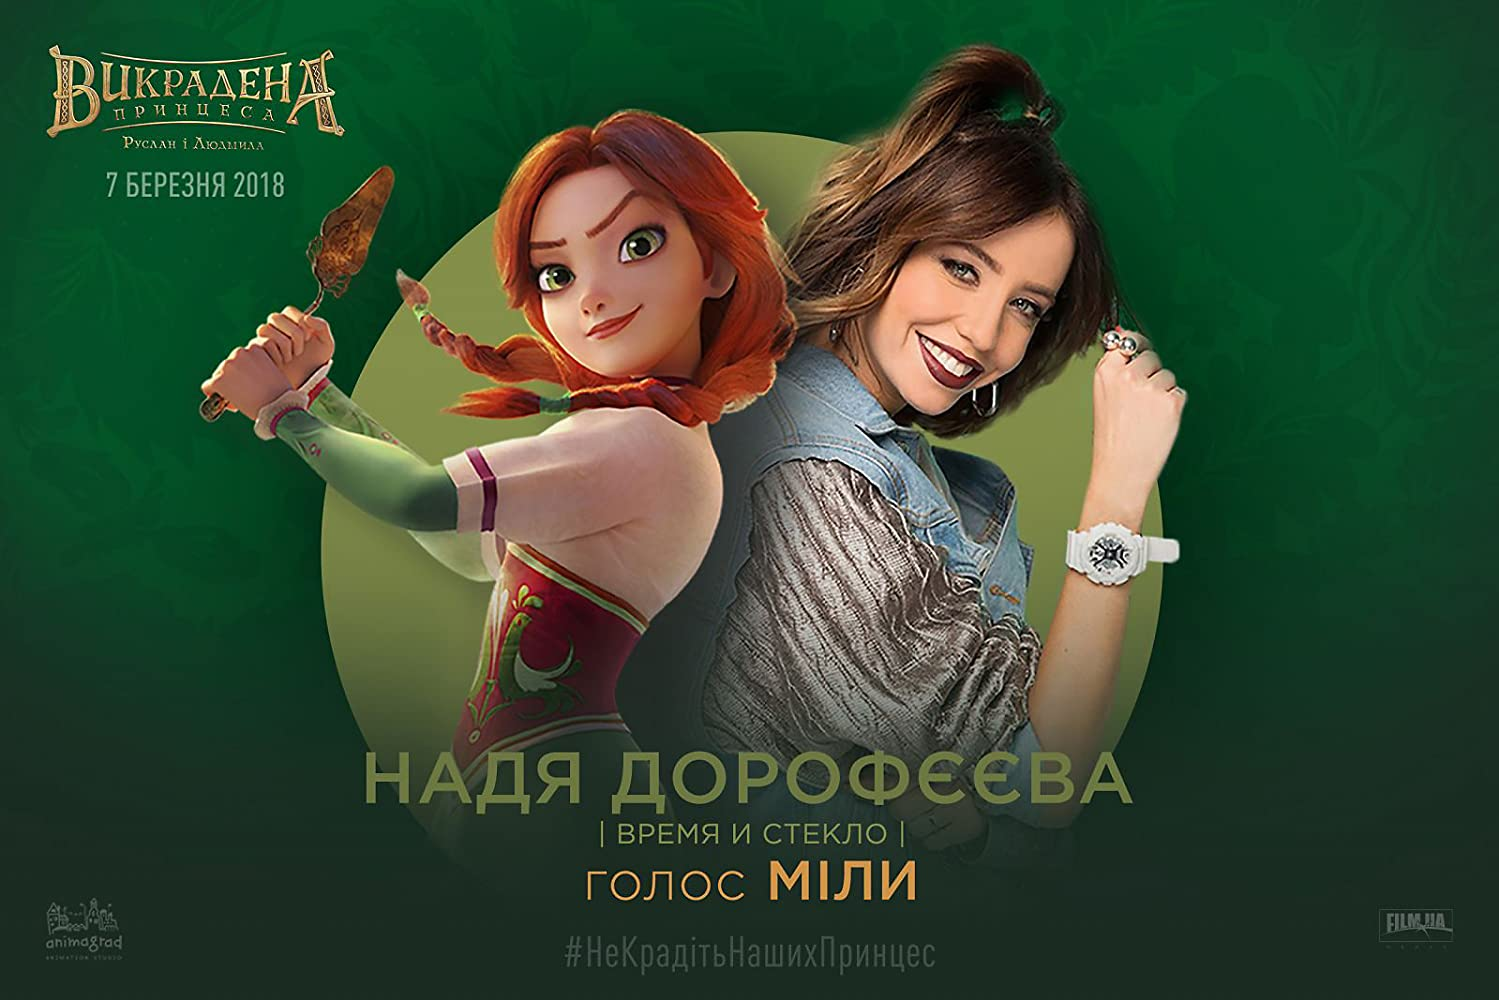 The Stolen Princess: Ruslan and Ludmila (2018)